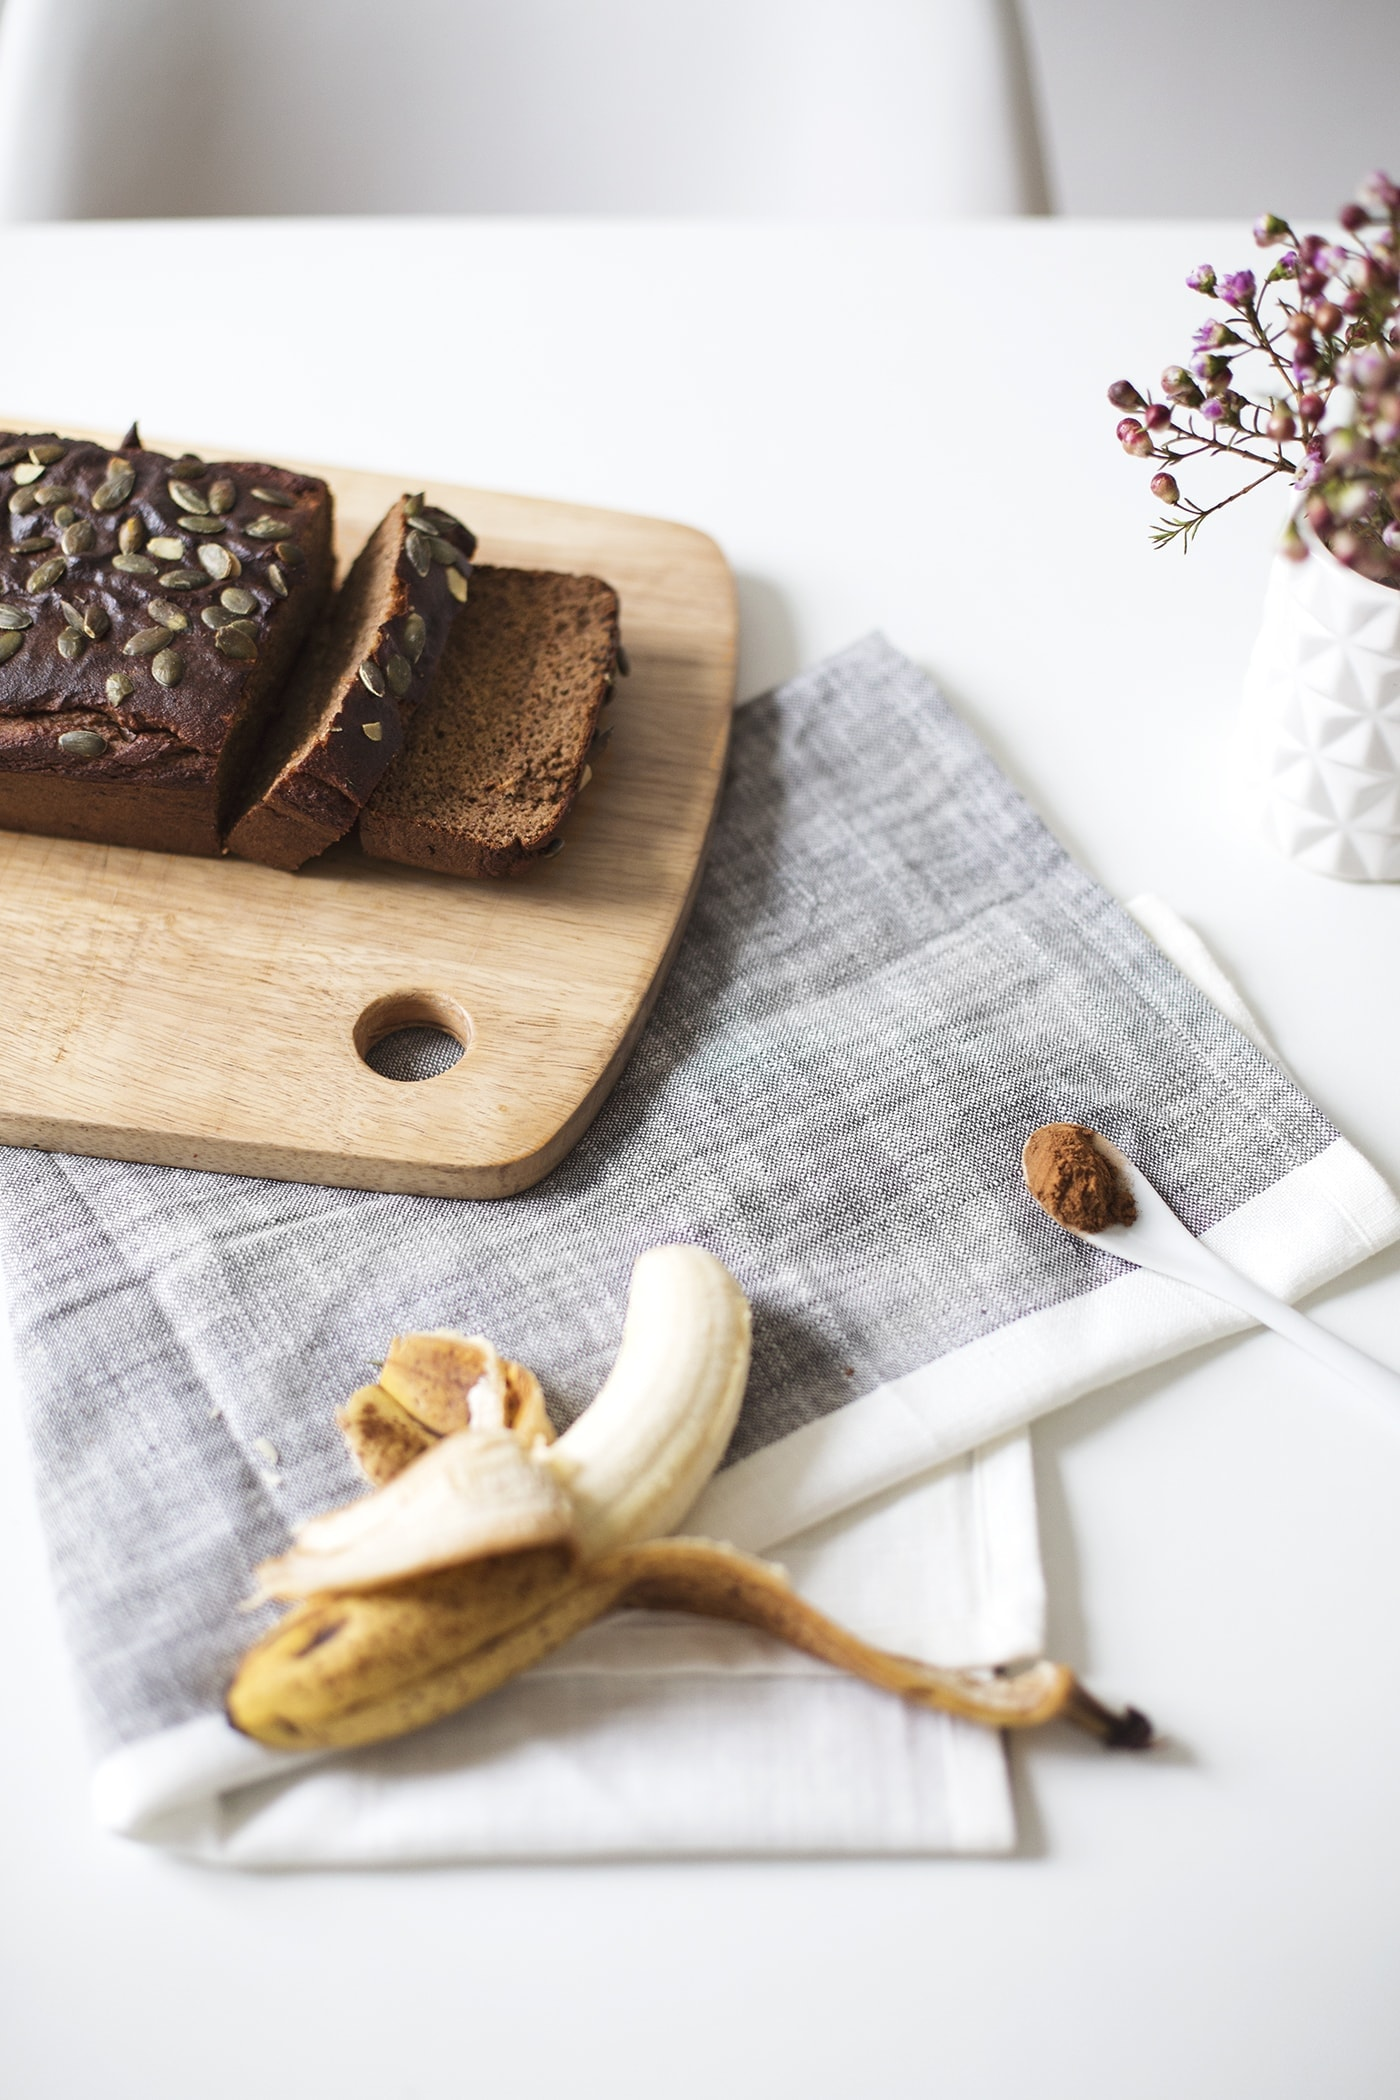 paleo seeded banana breakfast loaf recipe | grain free baking | gluten free